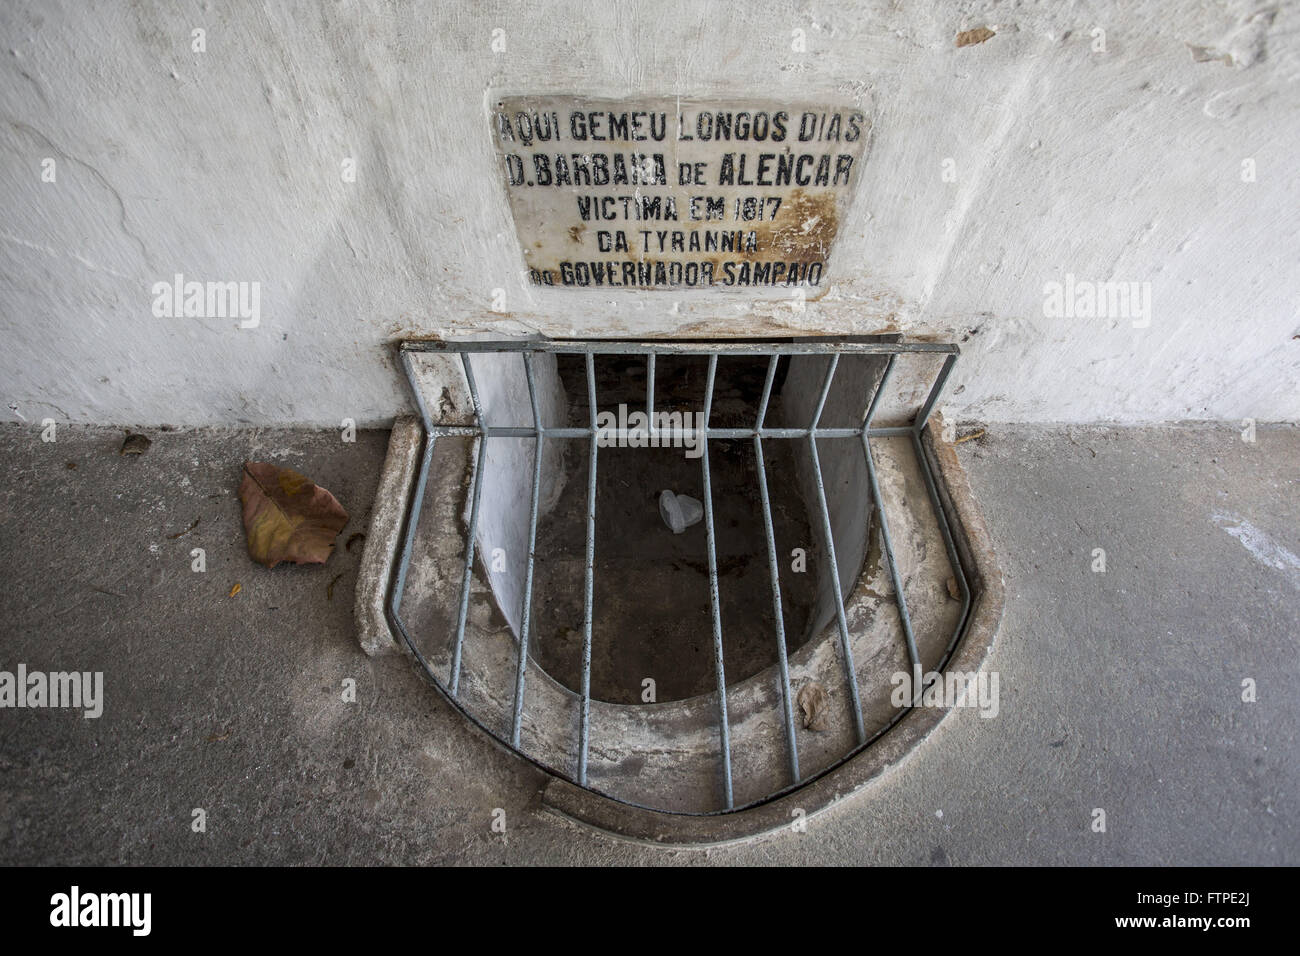 Dungeon where Barbara de Alencar was arrested for leading the proclamation of the Republic of the village of Crato - Stock Image